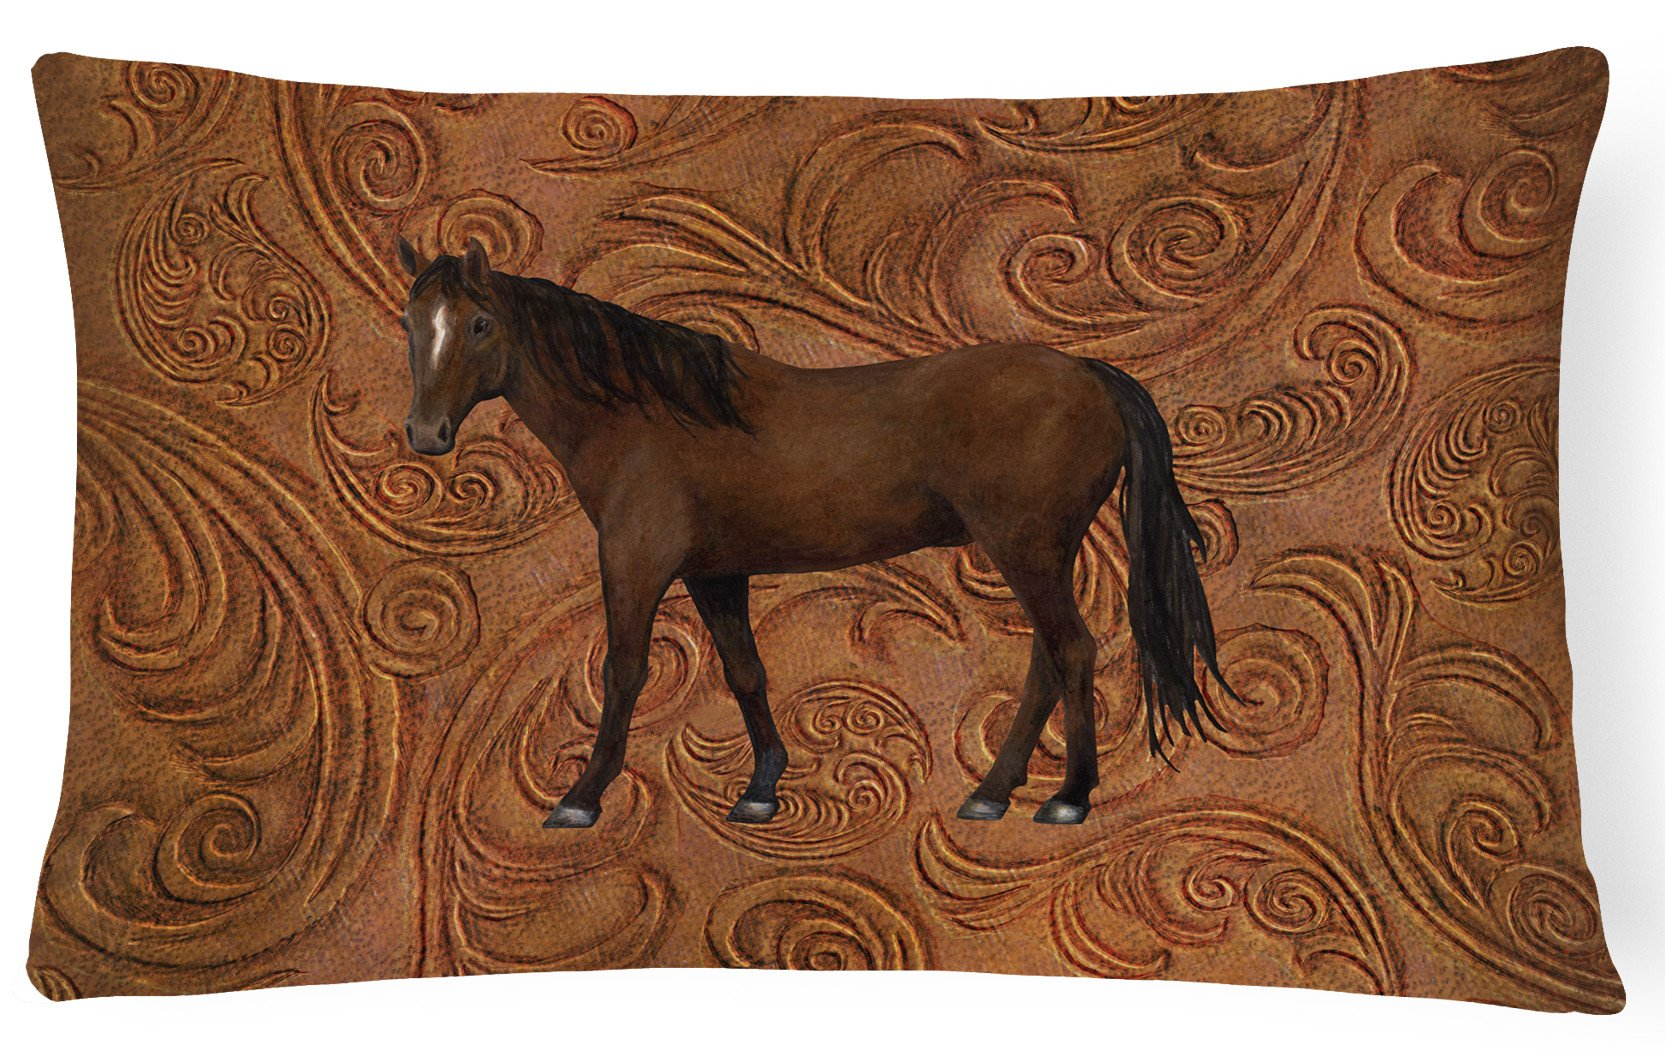 Horse   Canvas Fabric Decorative Pillow SB3066PW1216 by Caroline's Treasures